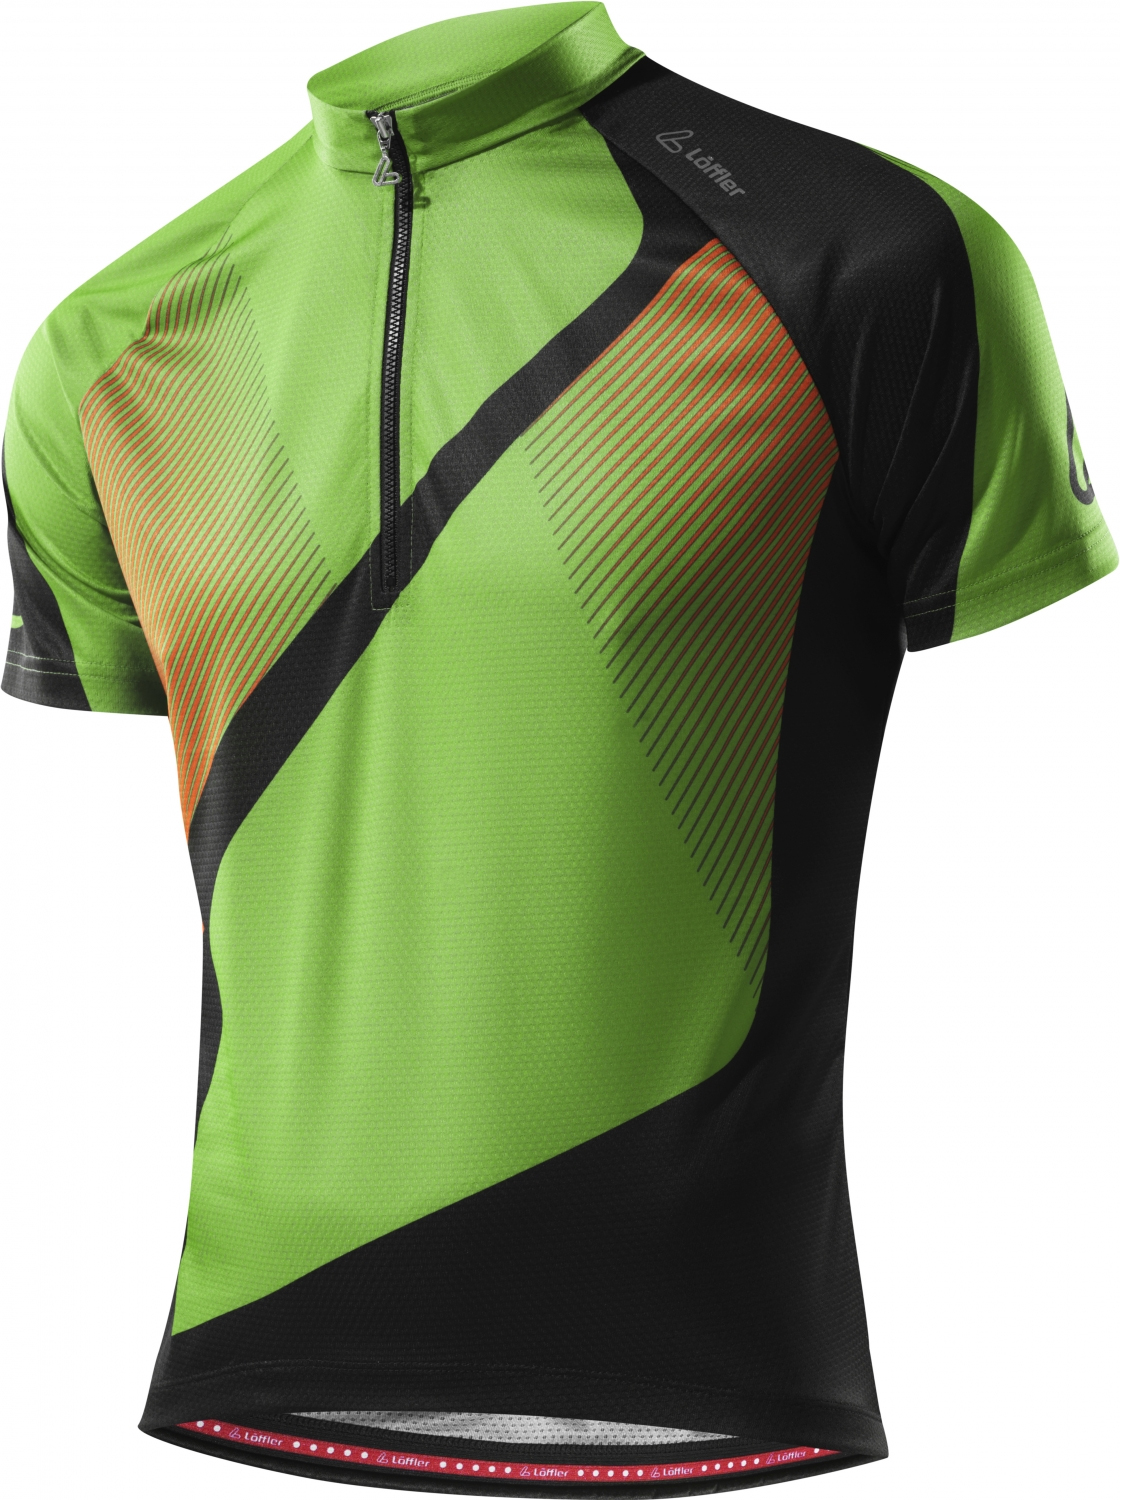 Herren Radtrikot BIKE-TRIKOT PERFORMANCE HZ